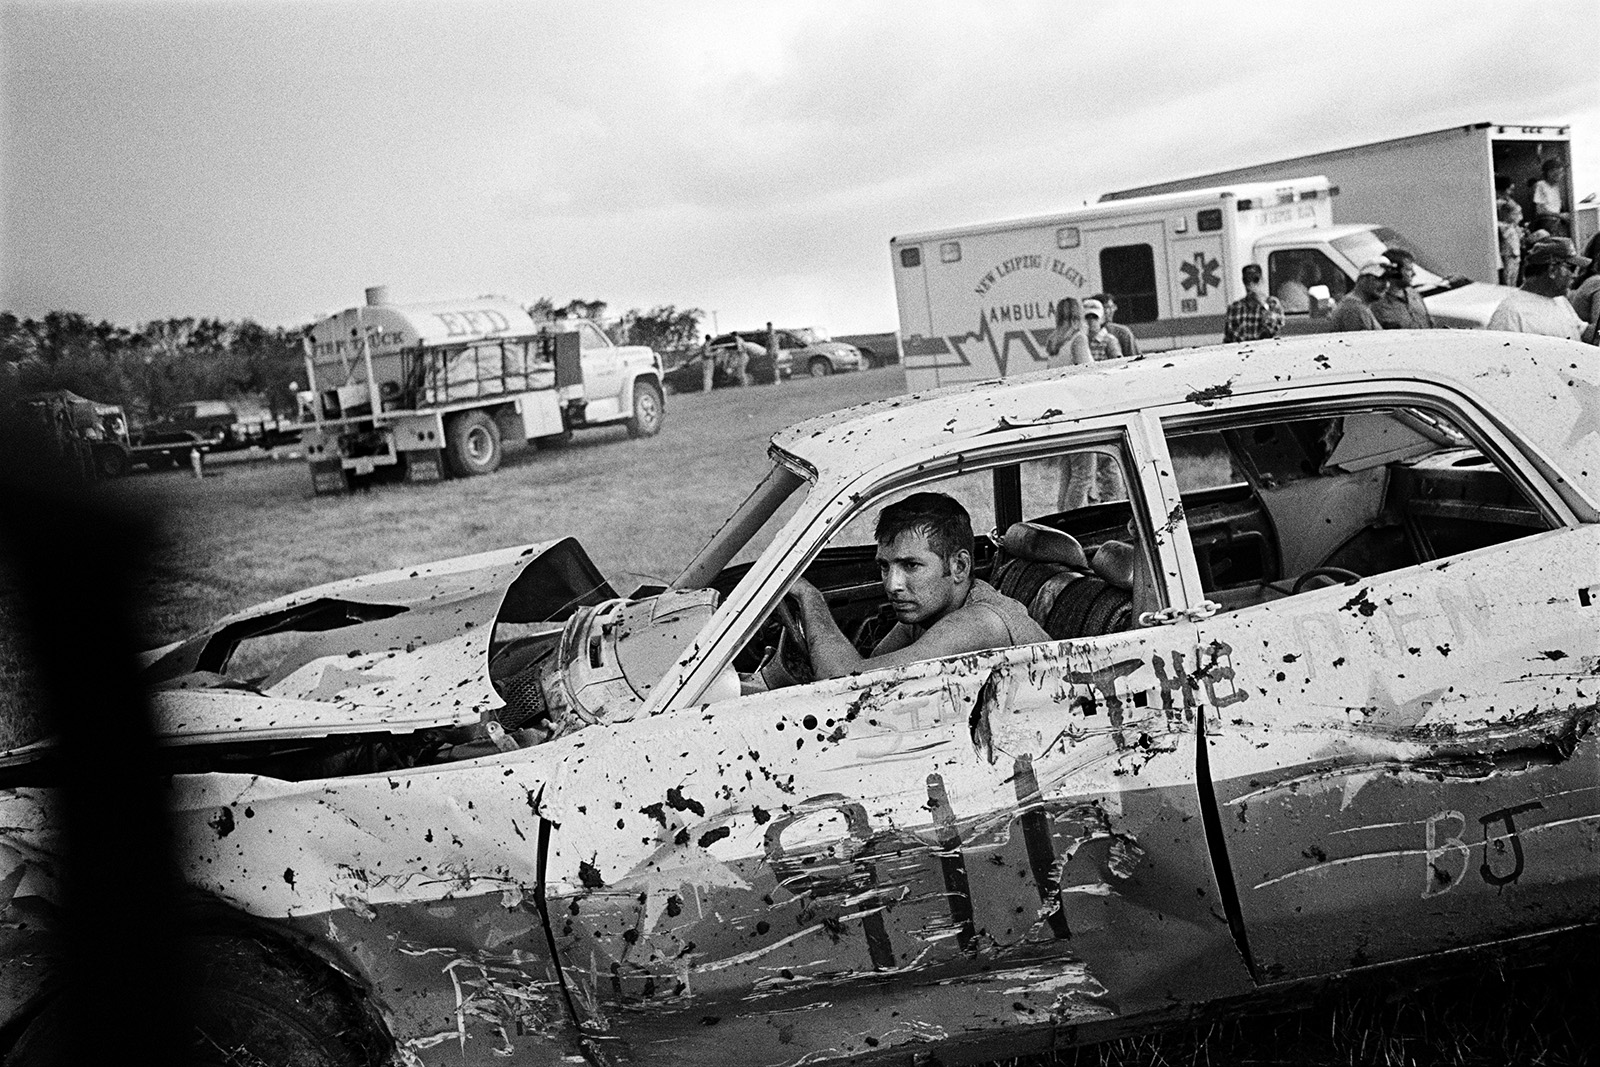 Demolition Derby, Elgin, North Dakota, 2004